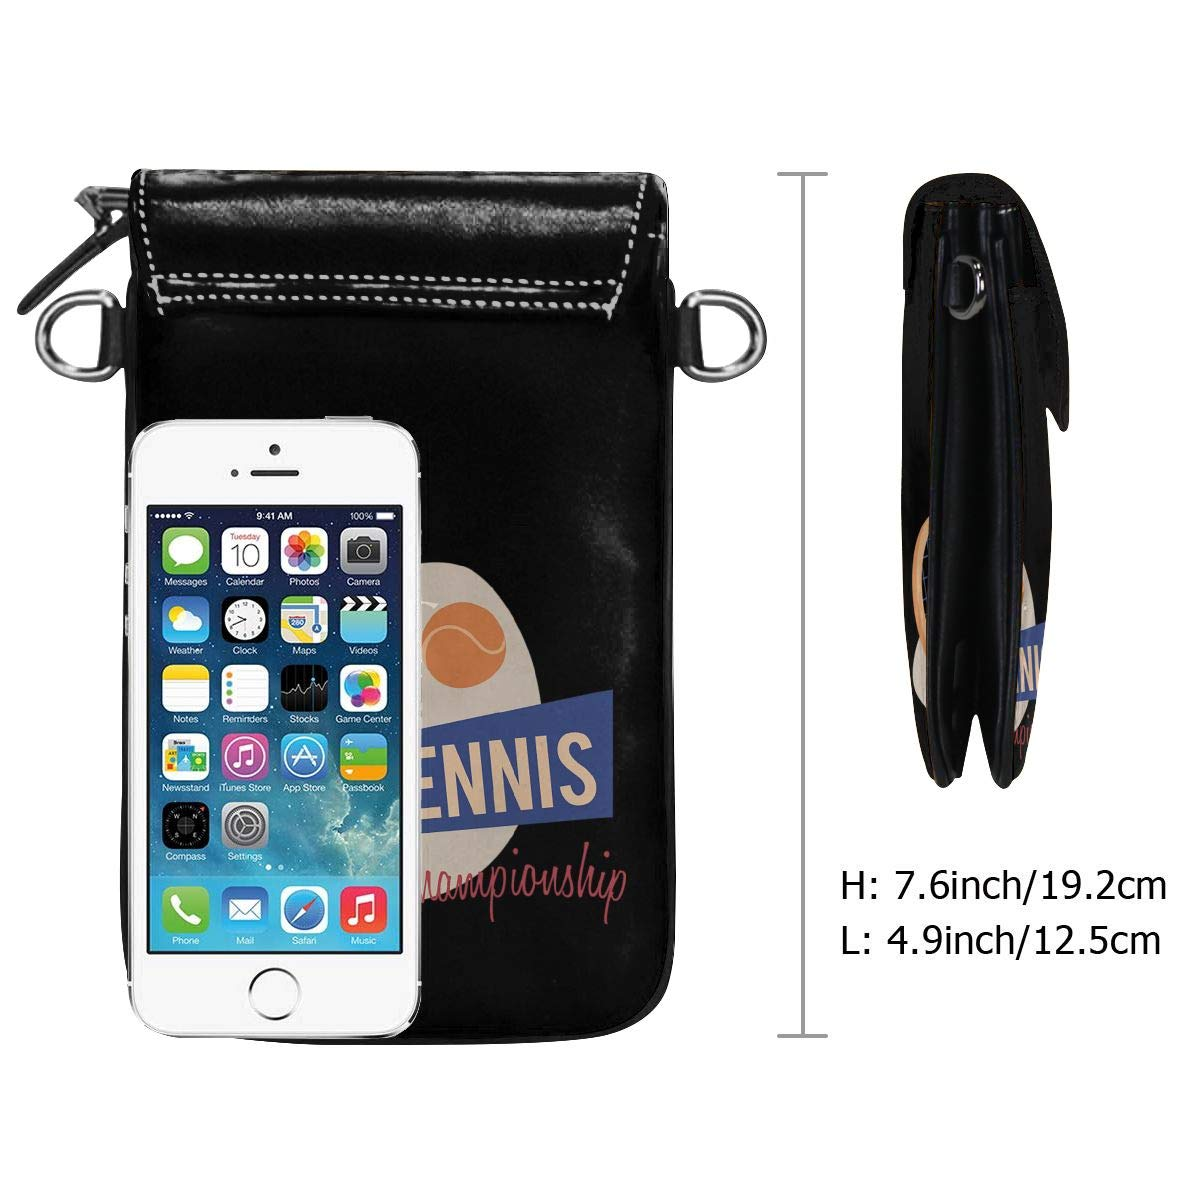 Small Cell Phone Purse For Women Leather Championship Tennis Insides Card Slots Crossbody Bags Wallet With Shoulder Strap